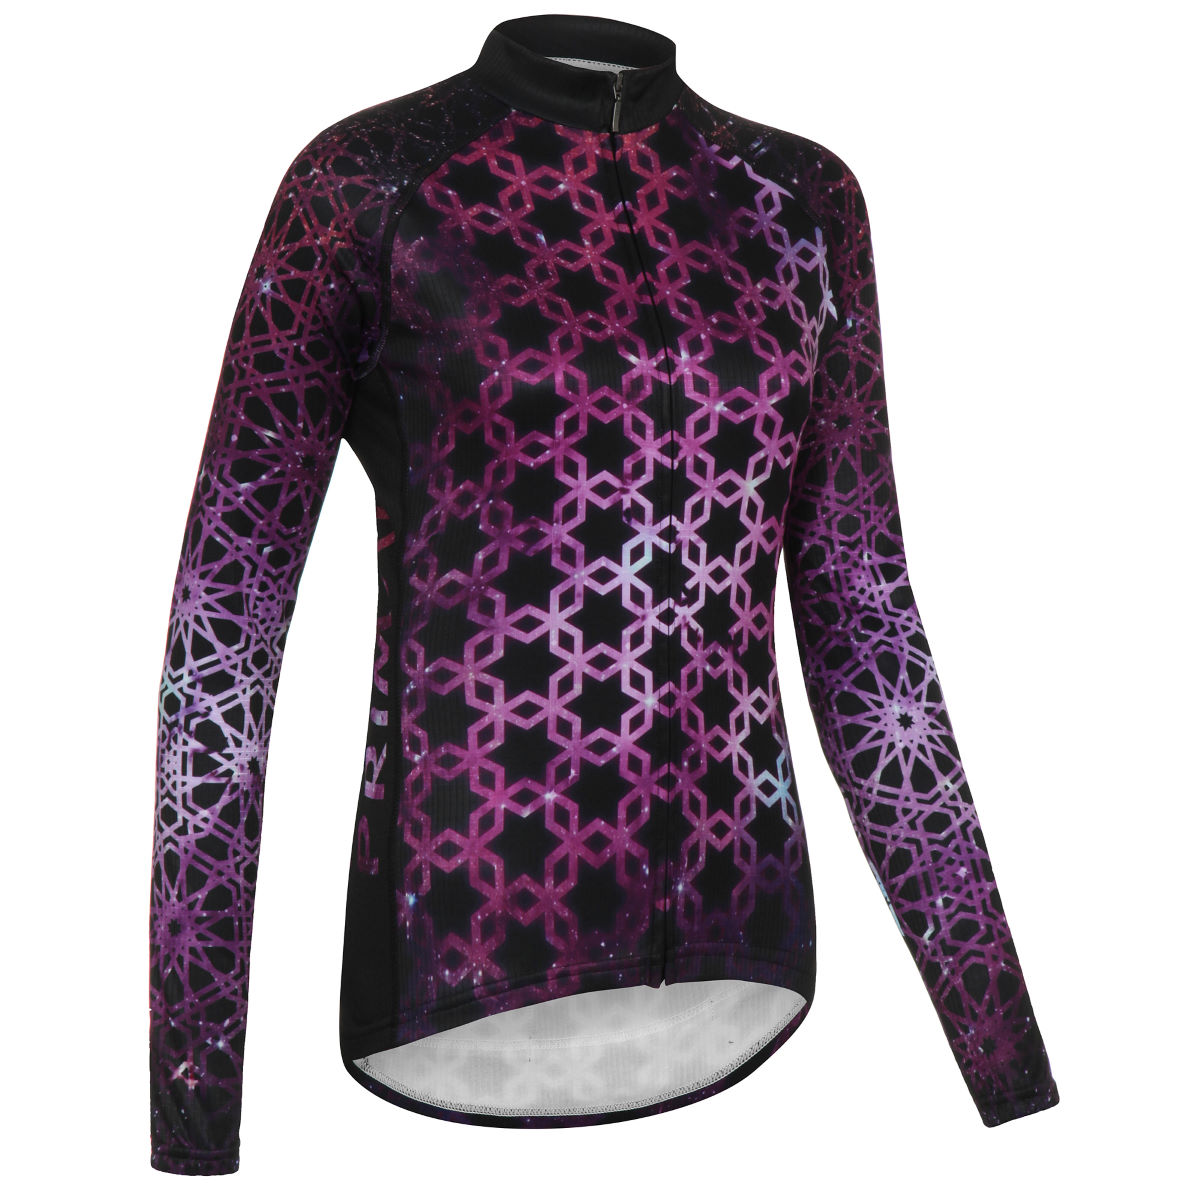 Maillot Femme Primal Vespere Heavyweight (manches longues) - L